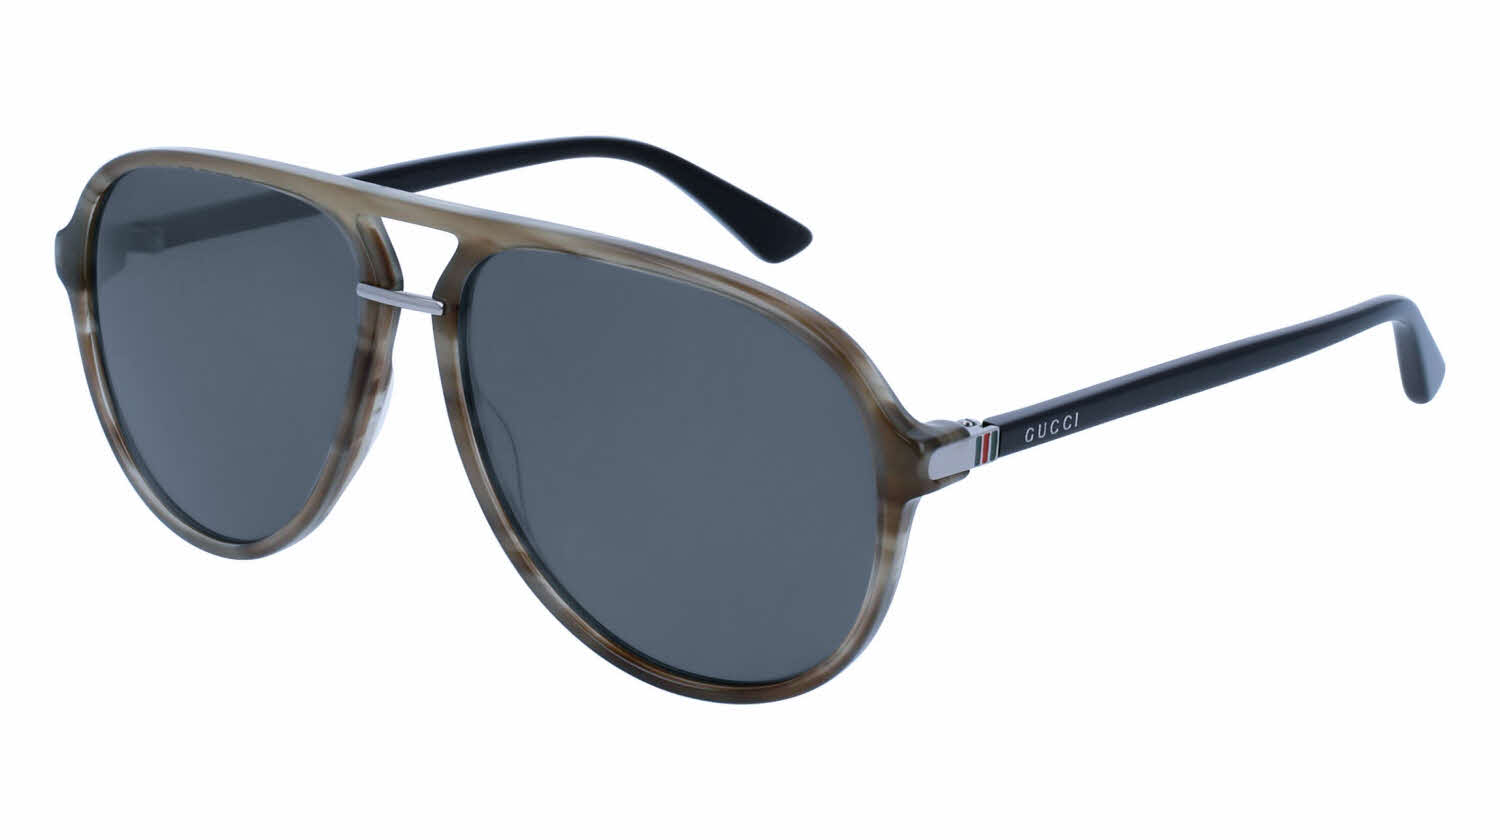 Gucci GG0015S Prescription Sunglasses